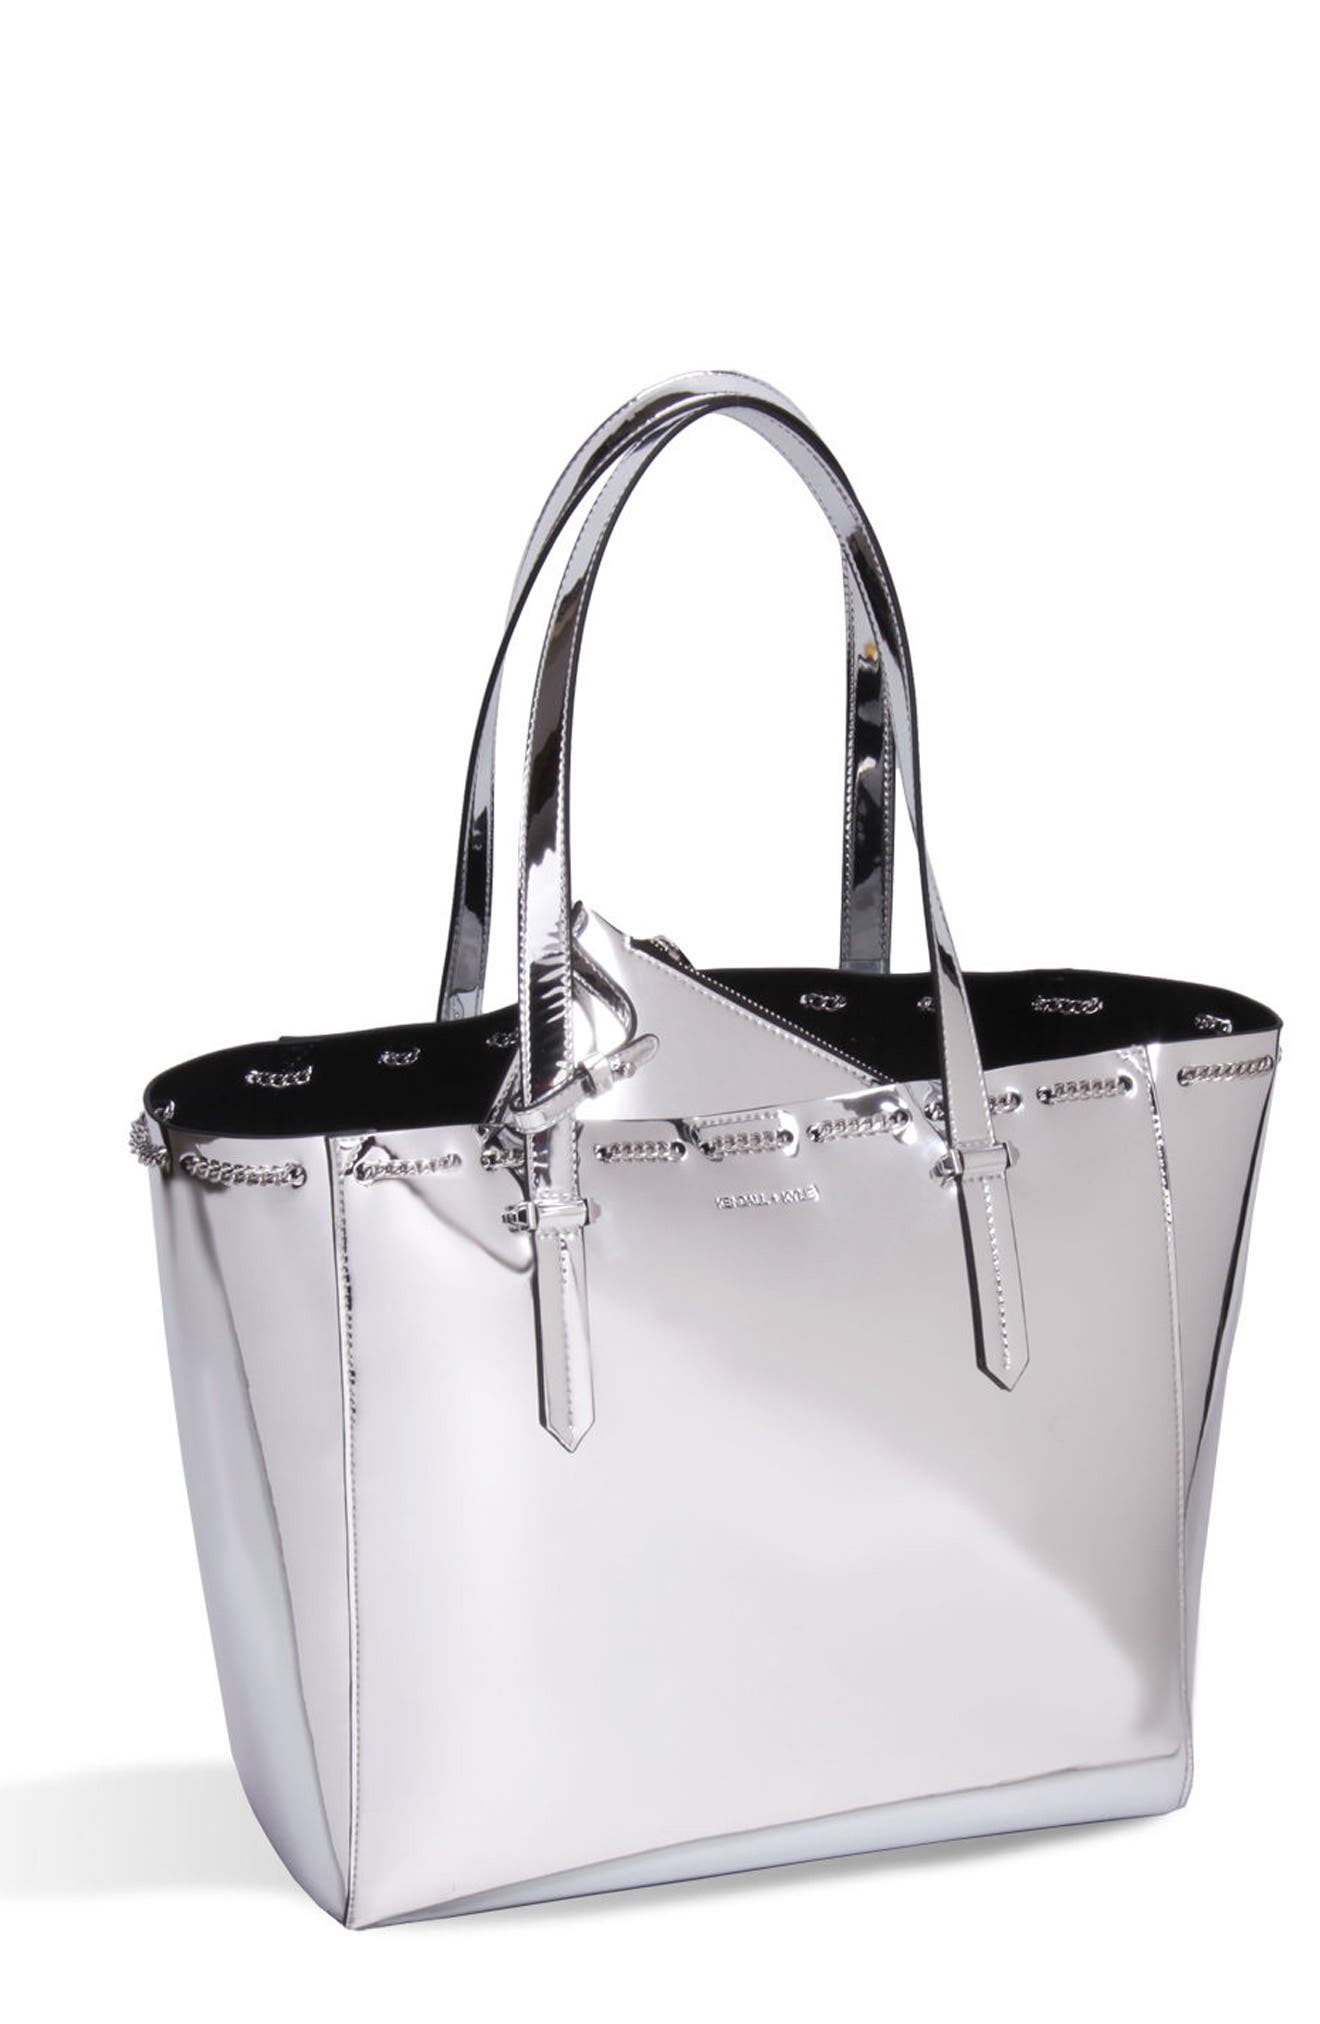 Main Image - KENDALL + KYLIE Izzy Chain Faux Leather Tote